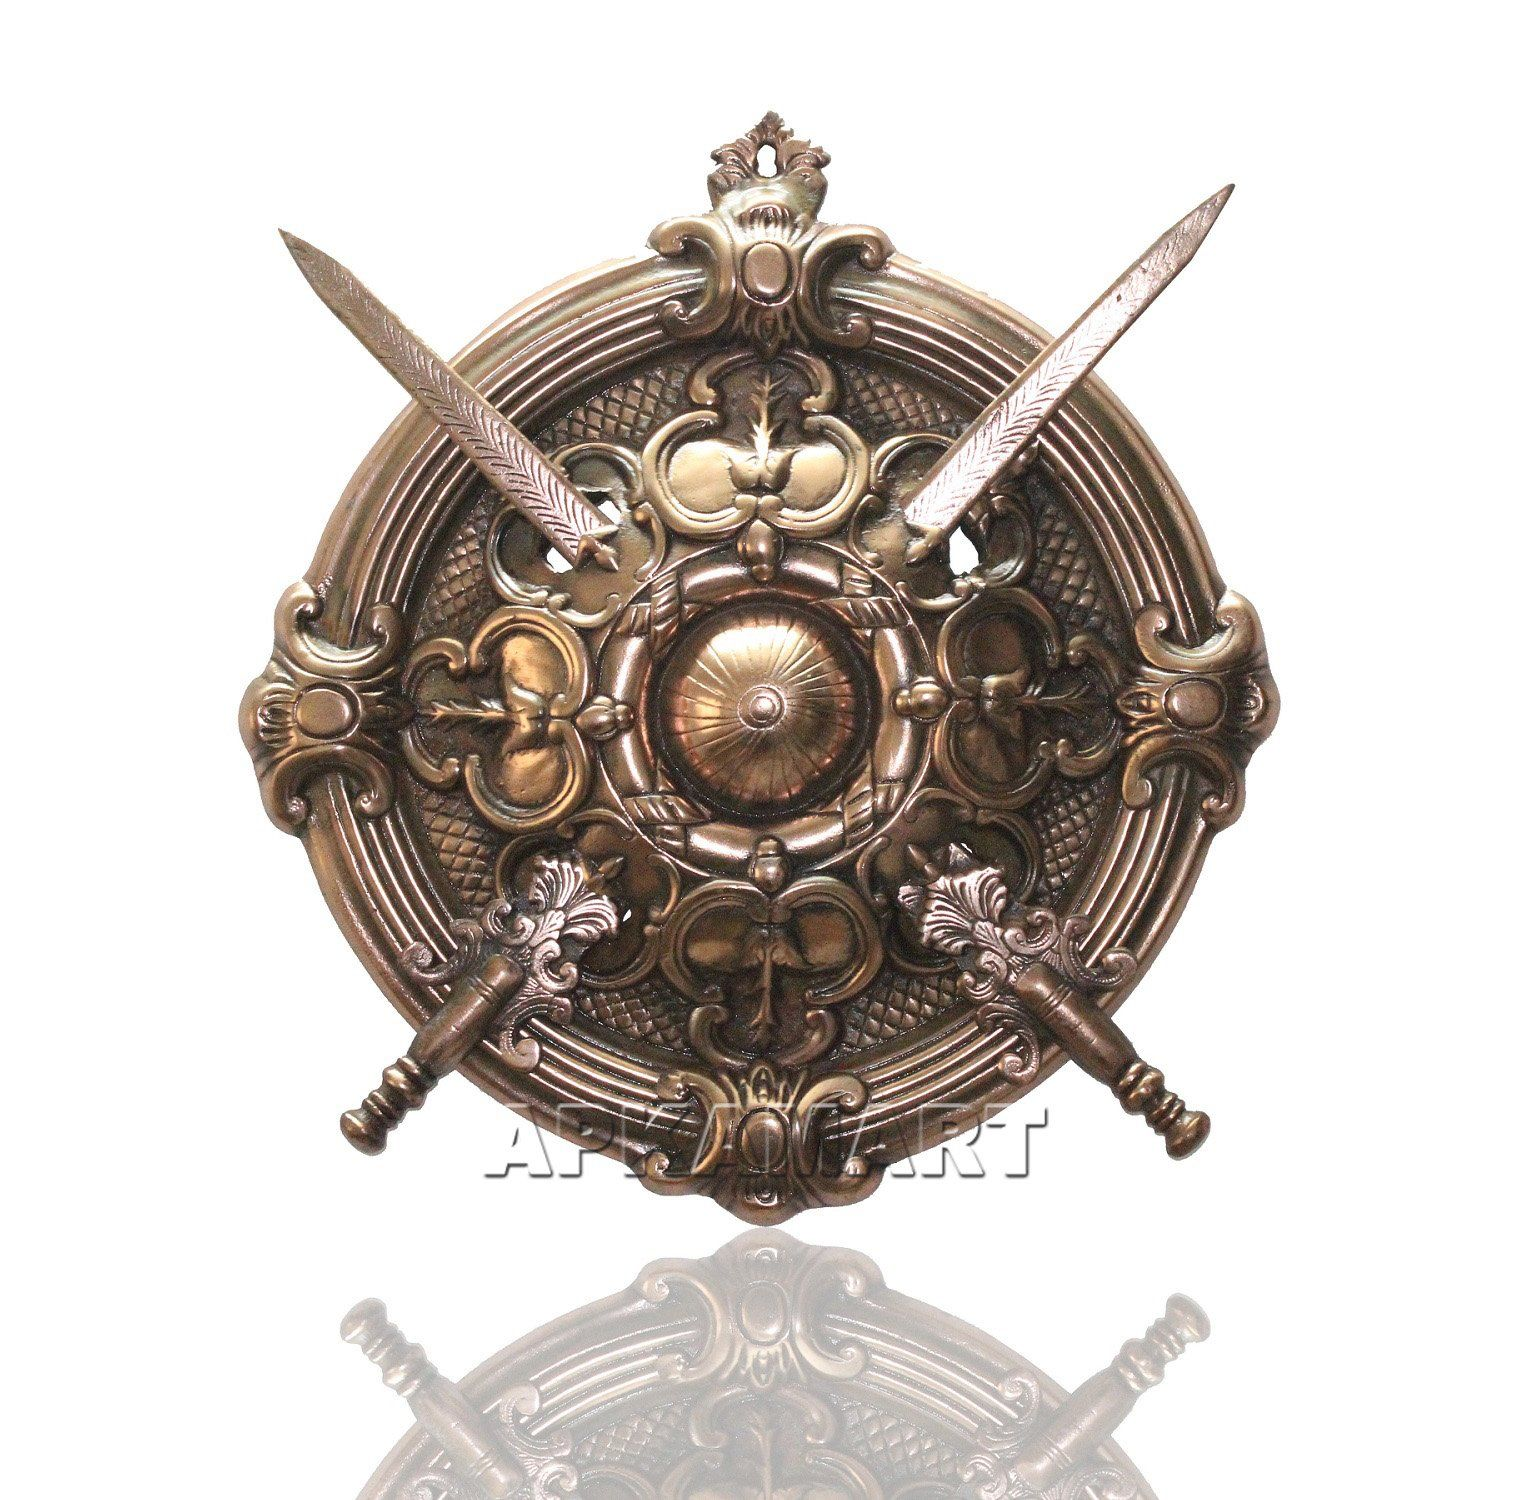 Pin on Sword and shield.